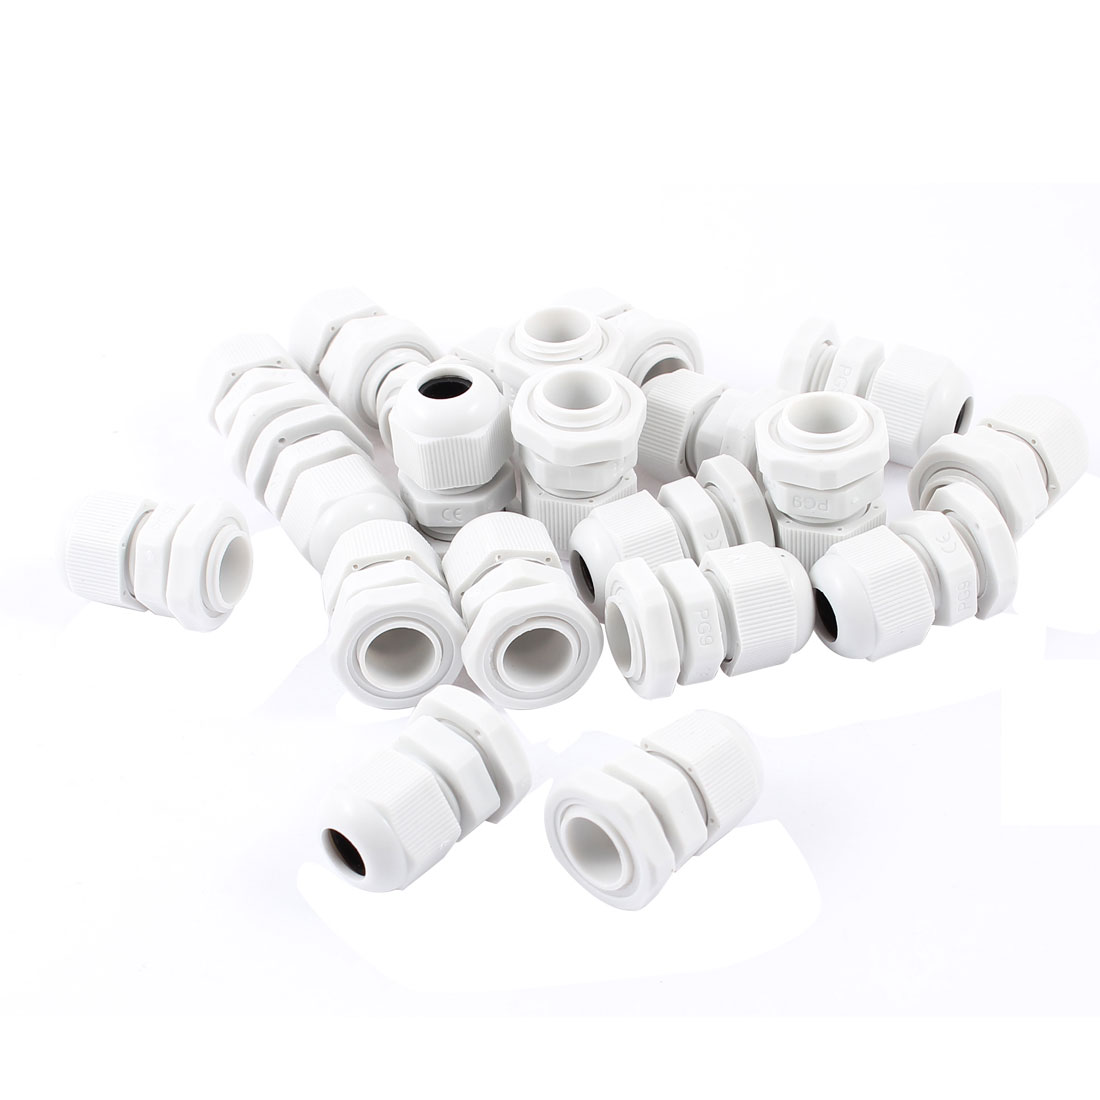 20 Pcs 4mm-8mm Diameter Cable Glands Plastic Fasteners PG9 Off White